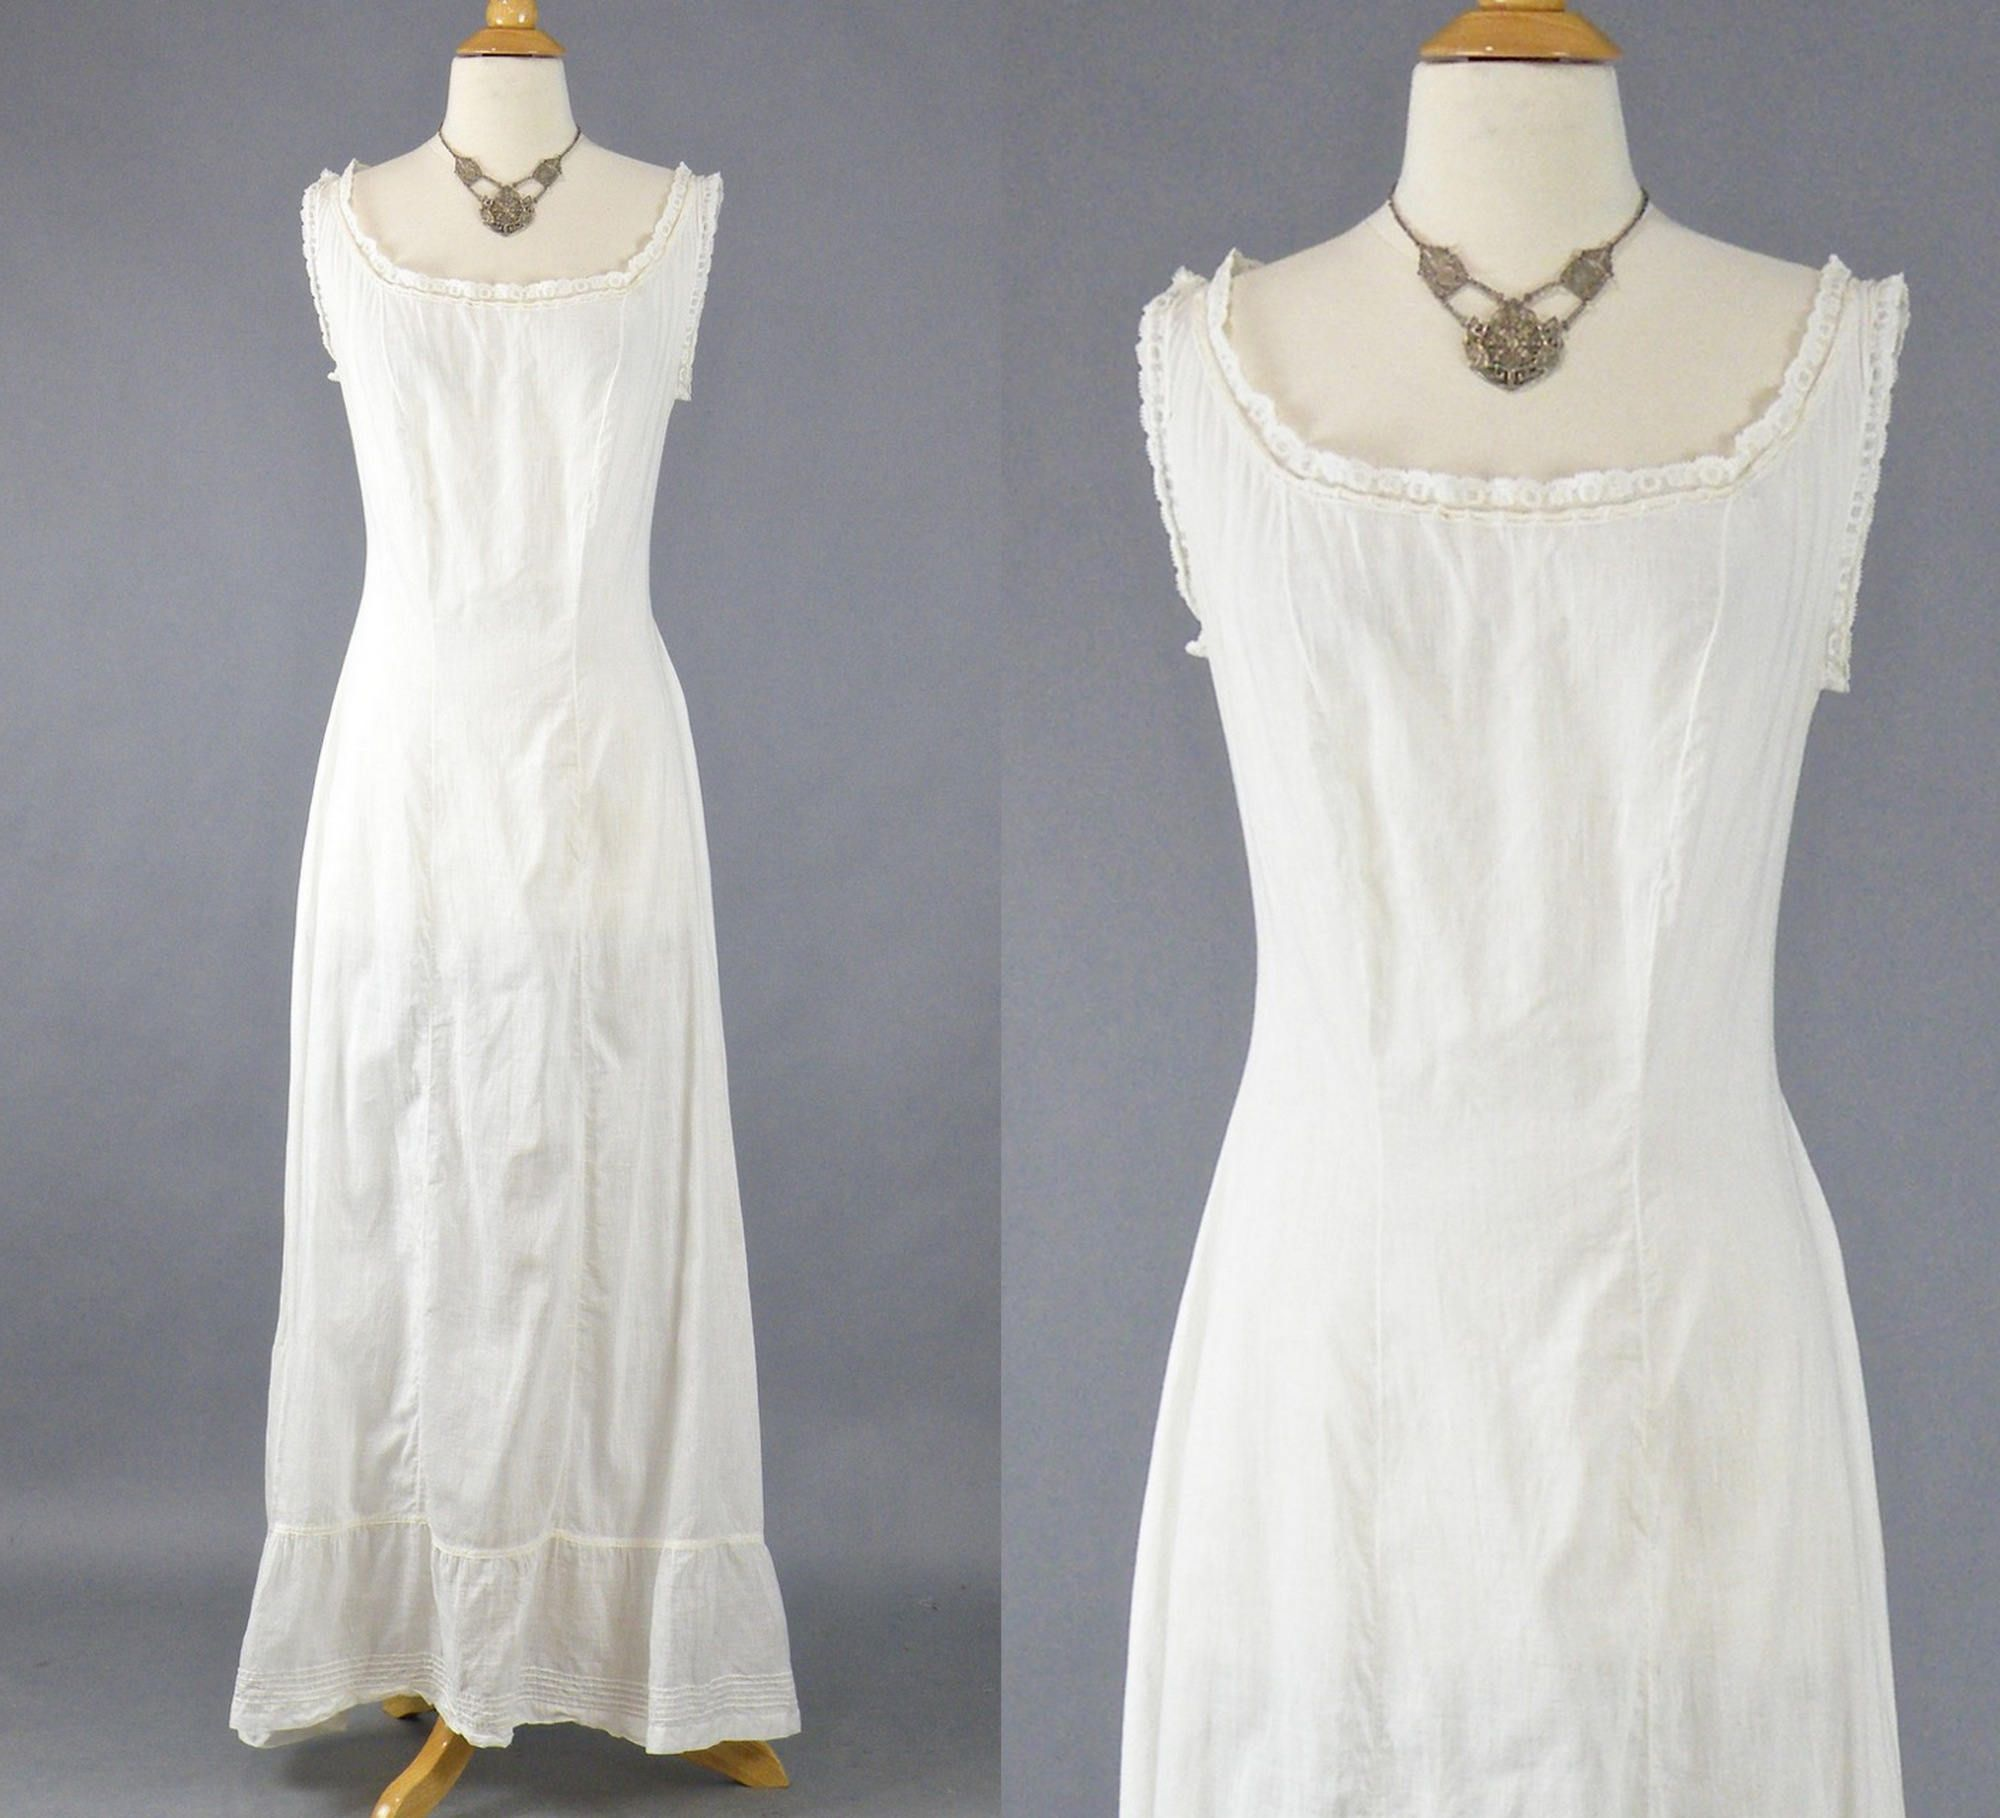 0d16b384a3 Edwardian Chemise Dress